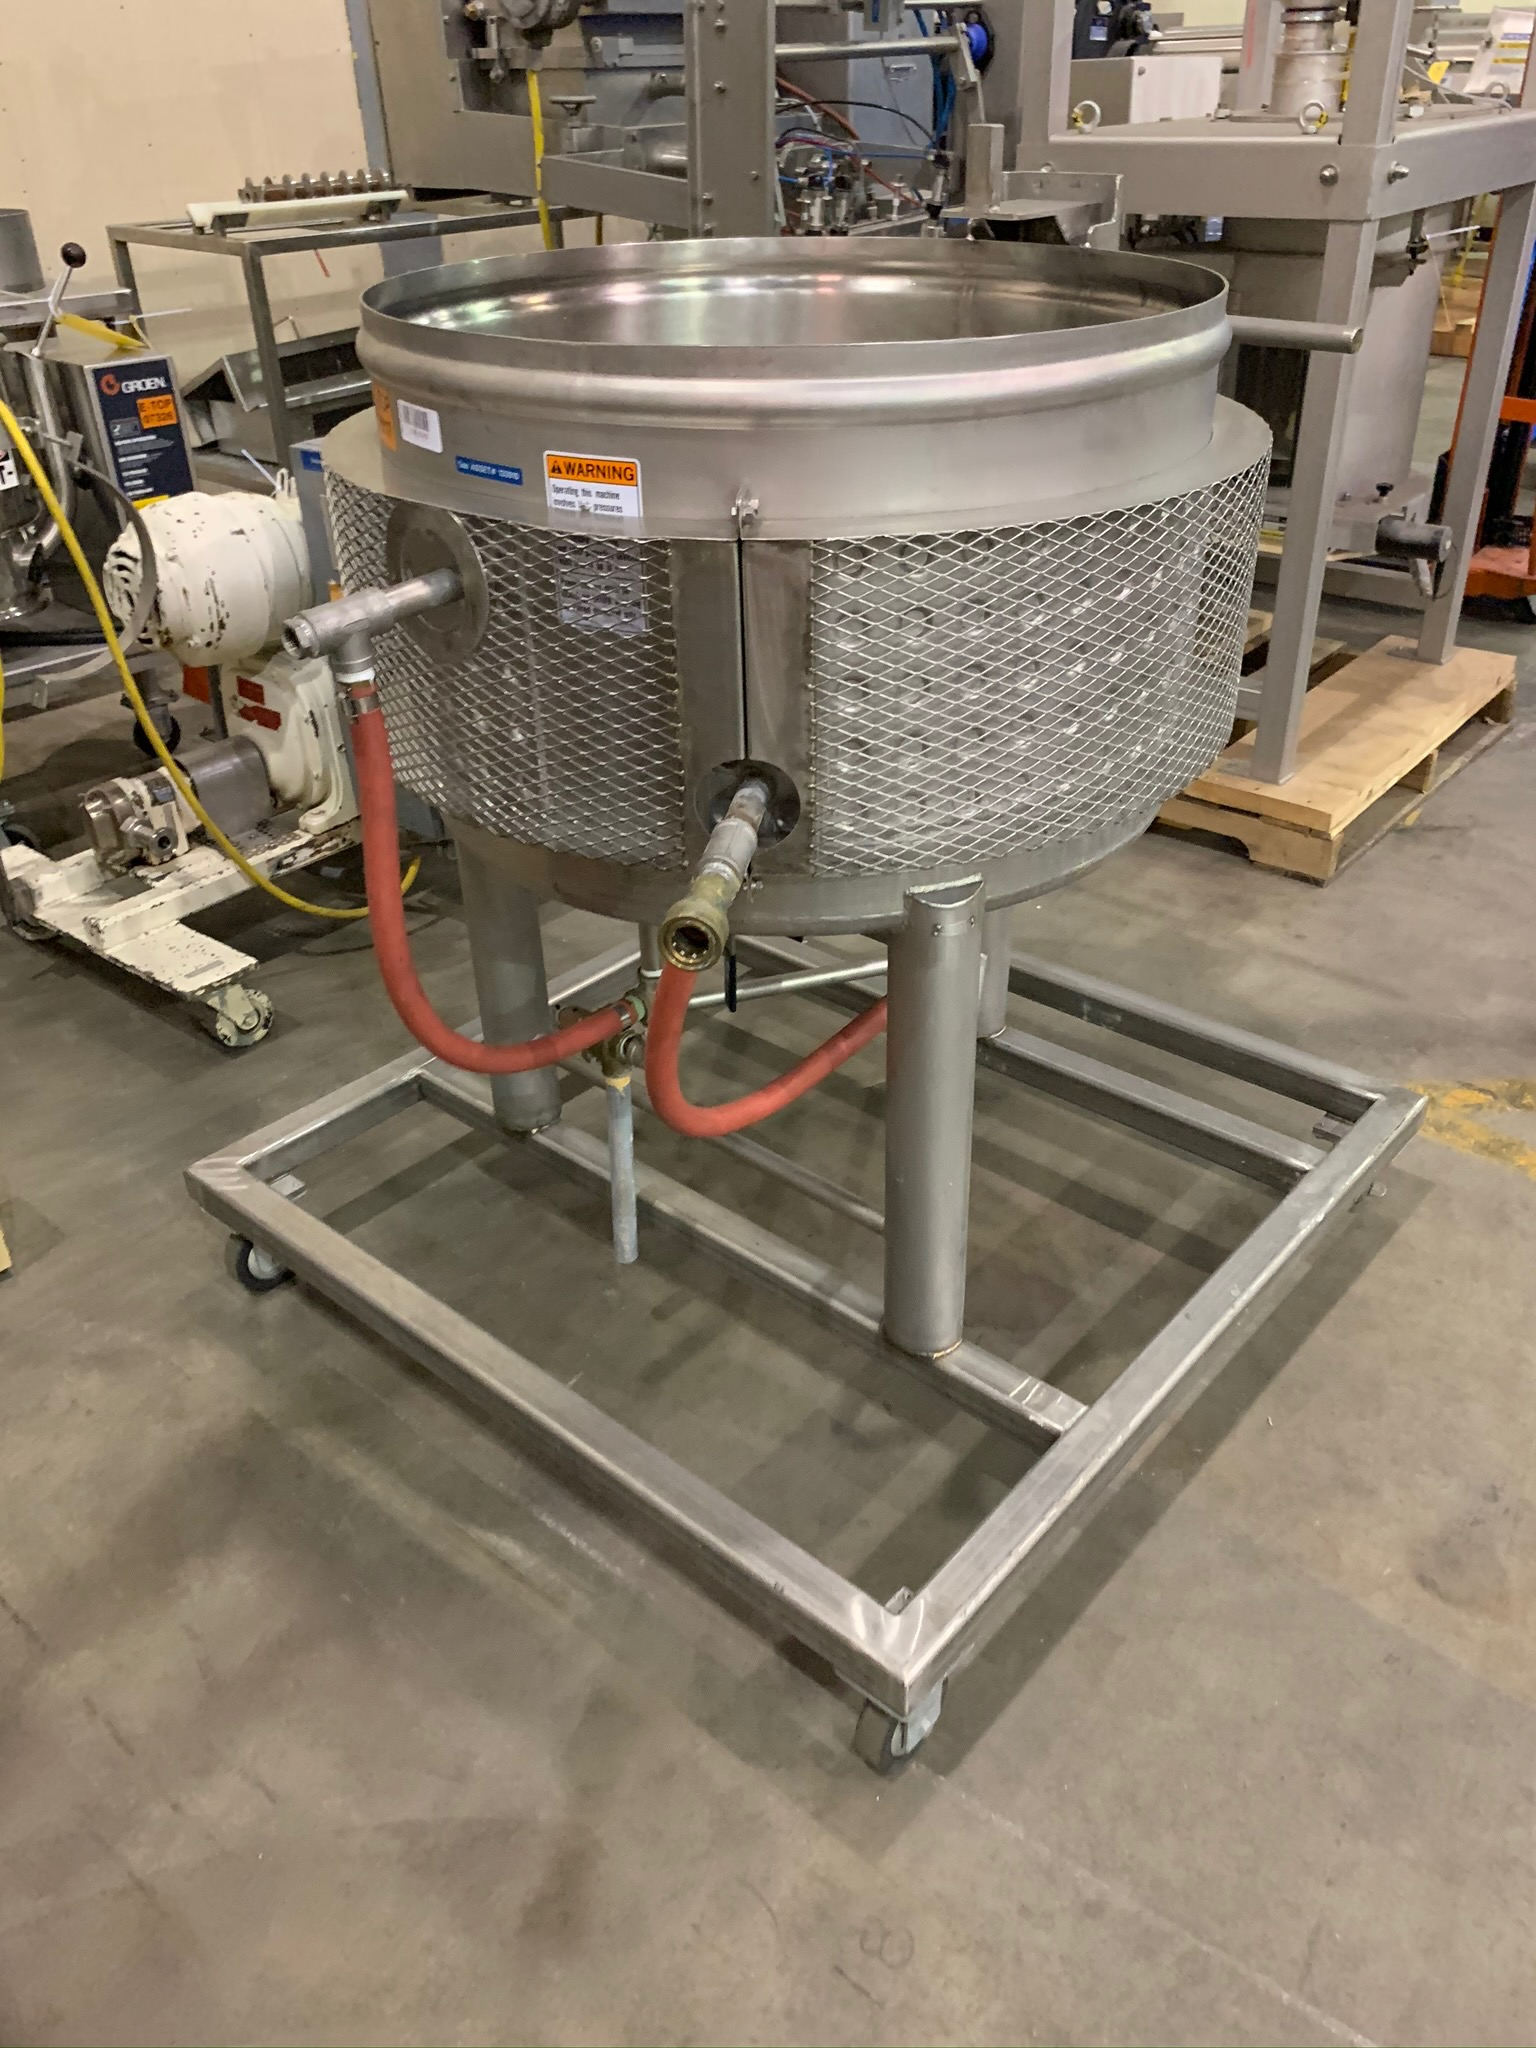 Approximate 25 Gallon Dimple Jacket Kettle Portable on Casters (Rigging Fee - $50) - Image 2 of 3